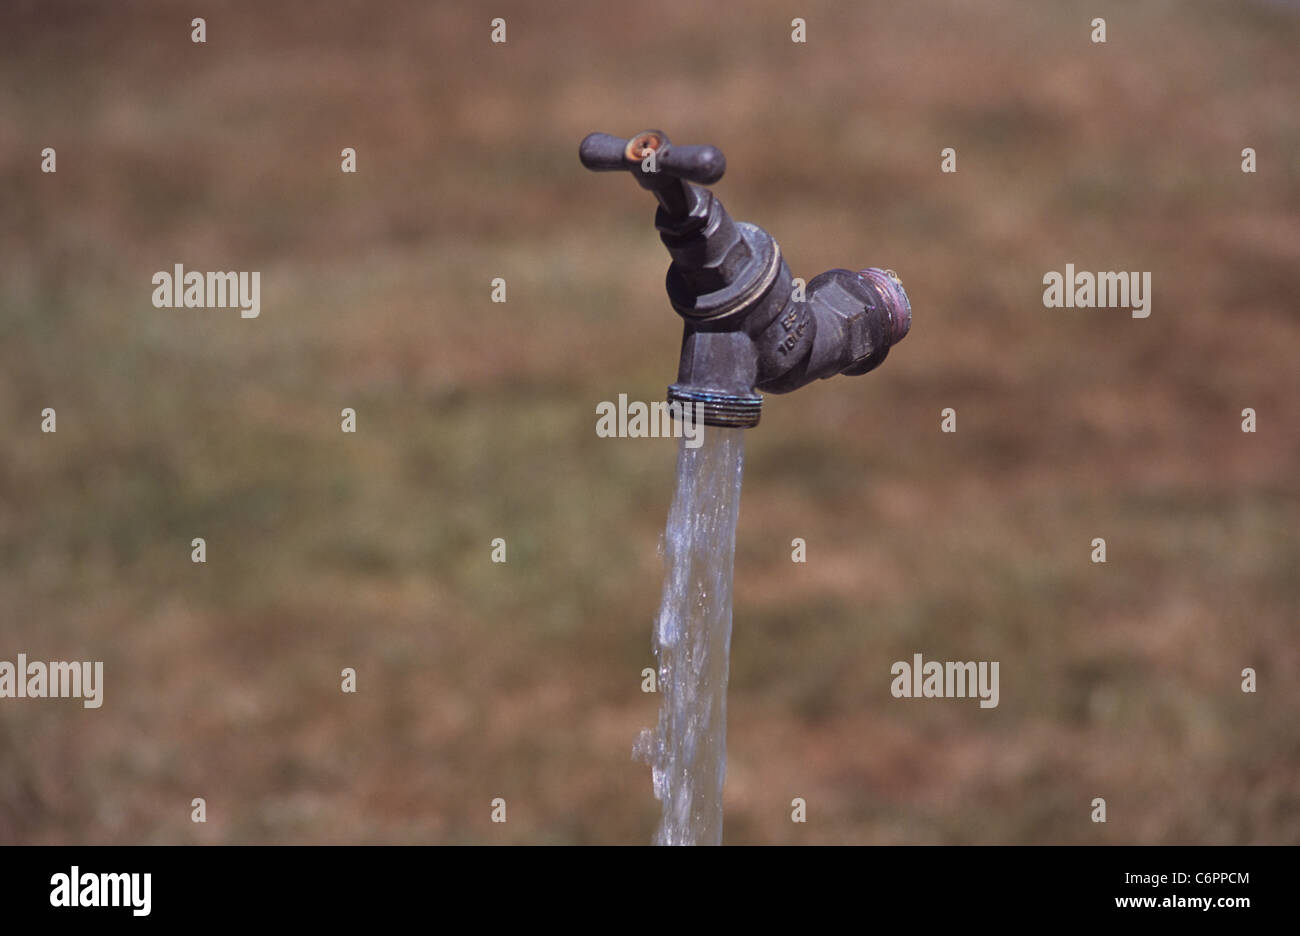 pipeless tap fountain - Stock Image